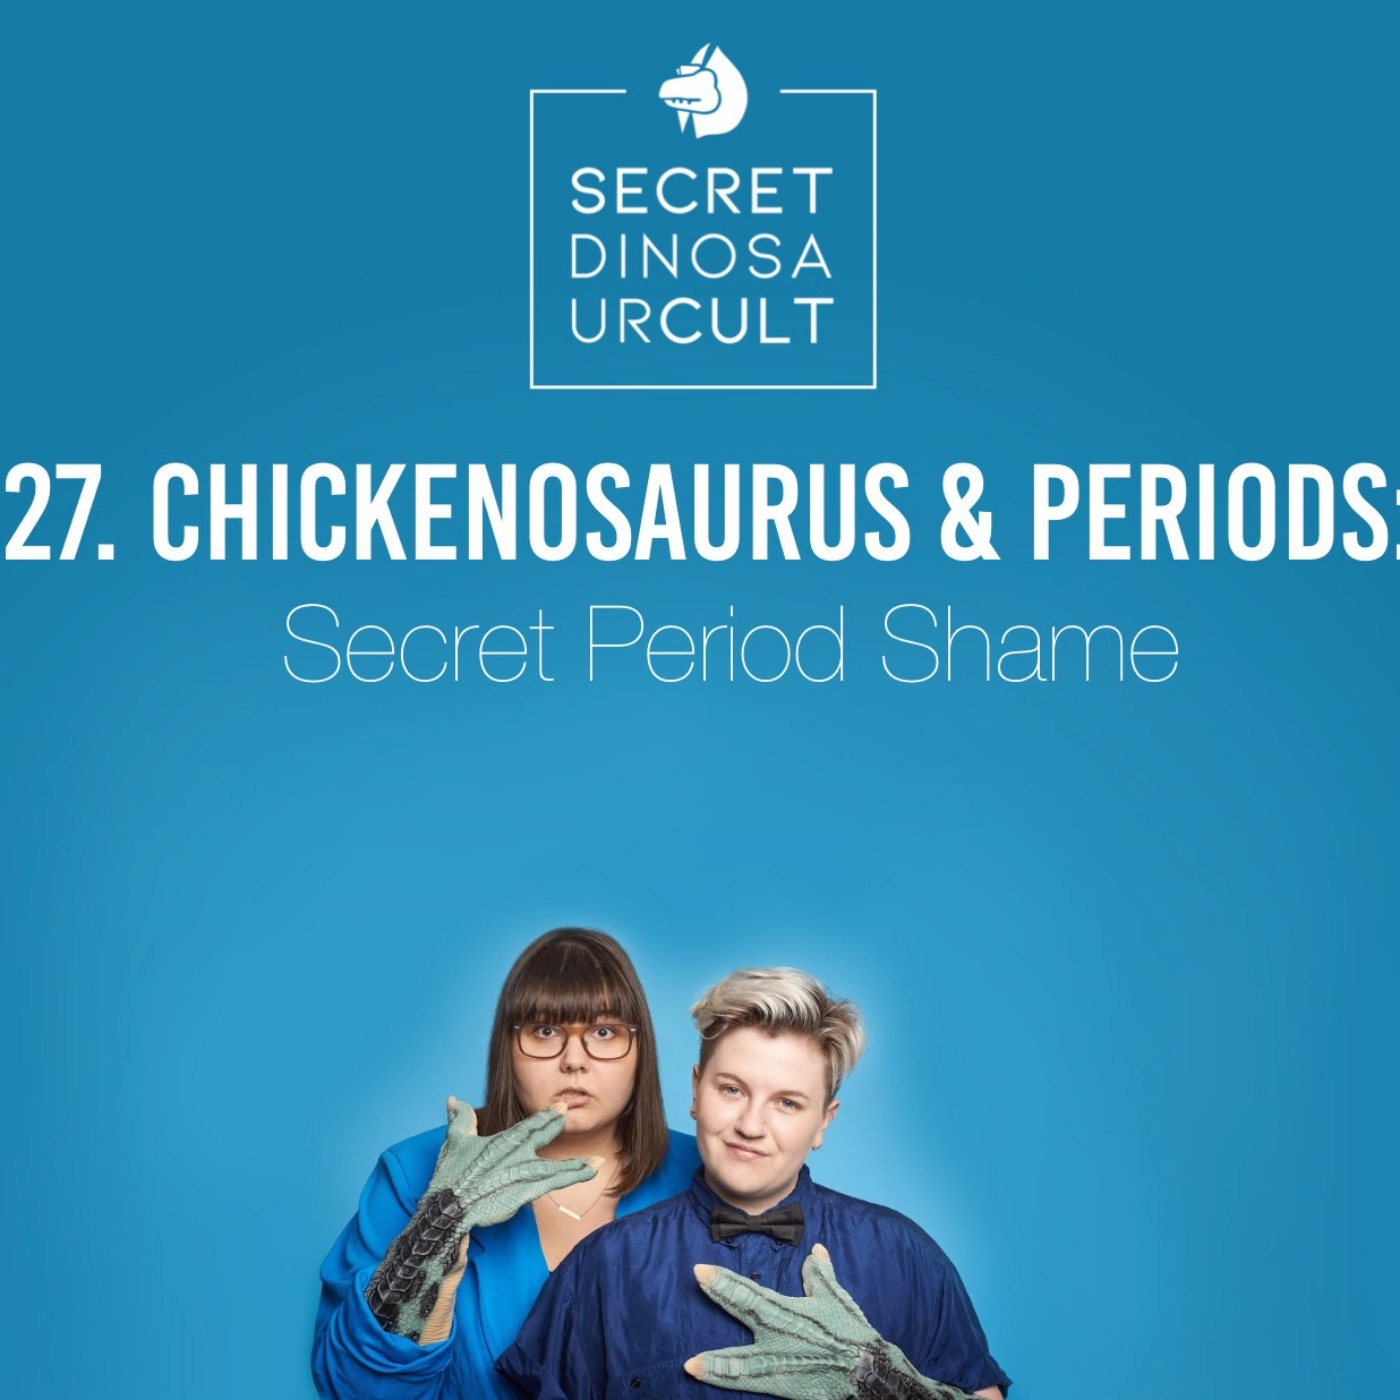 27. Chickenosaurus & Periods: Secret Period Shame